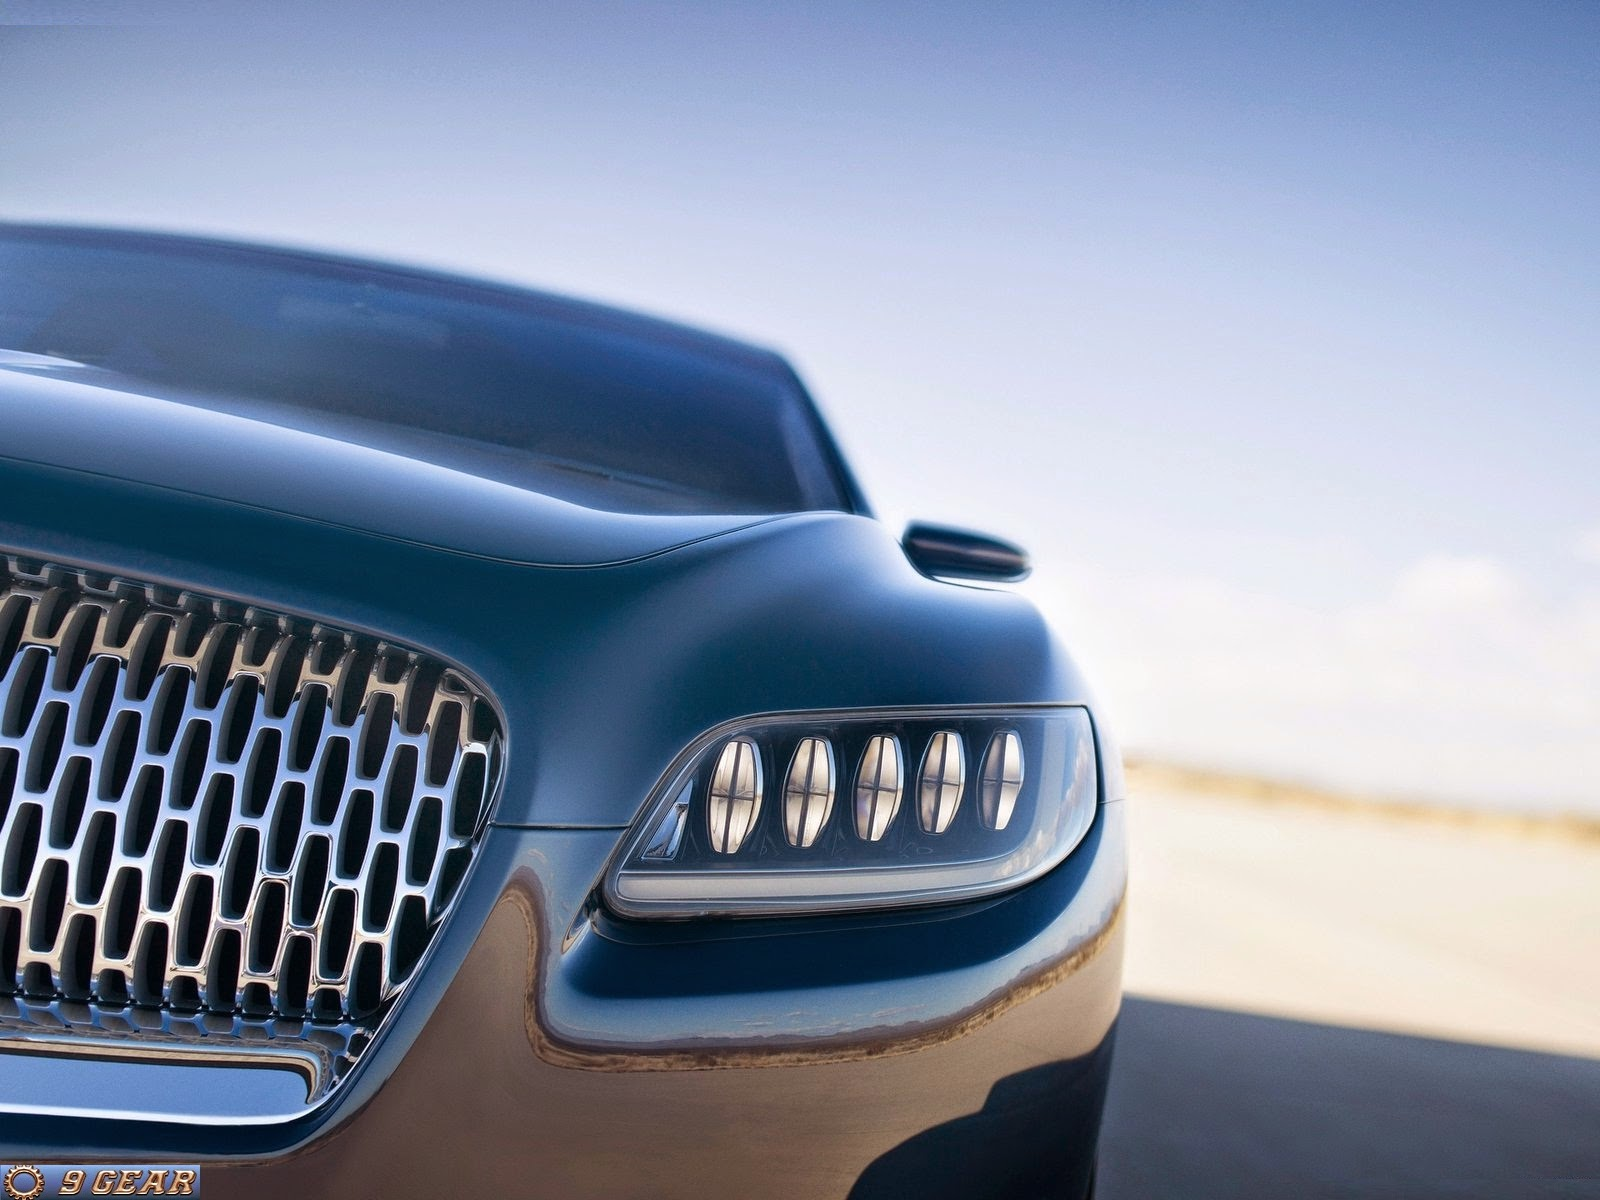 2015 Lincoln Continental Concept: Elegant, Powerful | Car Reviews ...